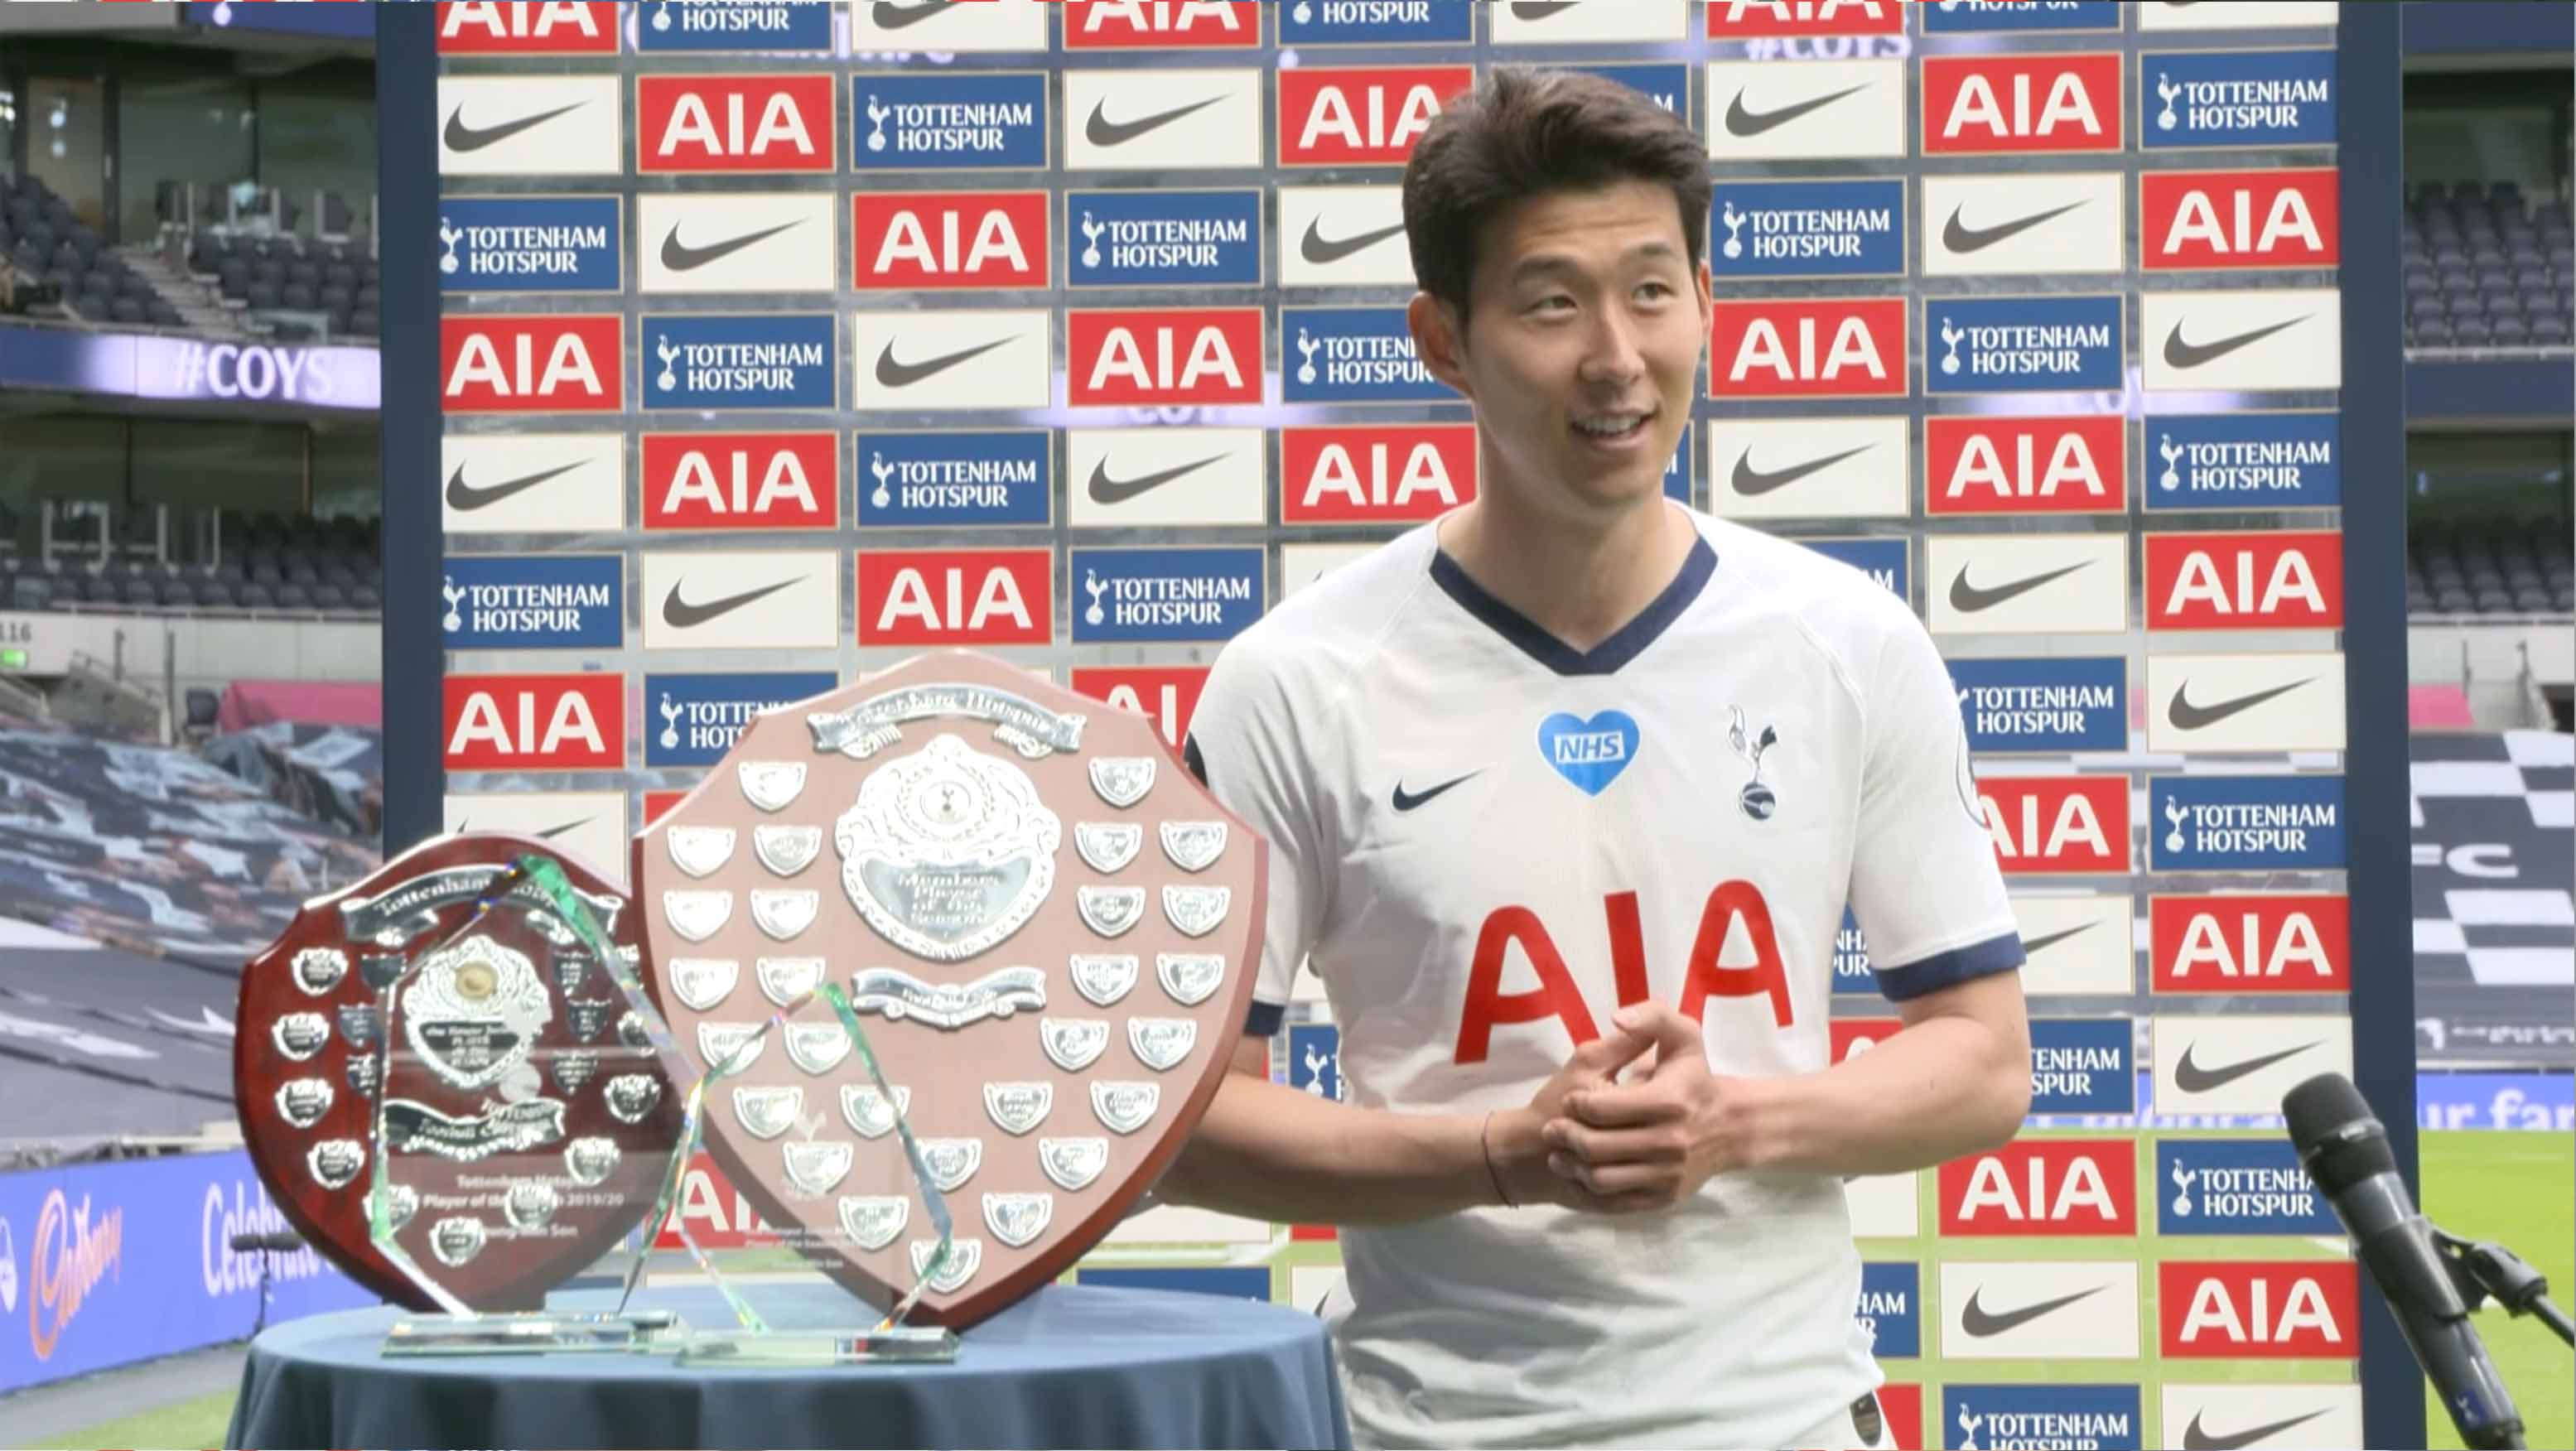 Son collects end-of-season awards | Tottenham Hotspur